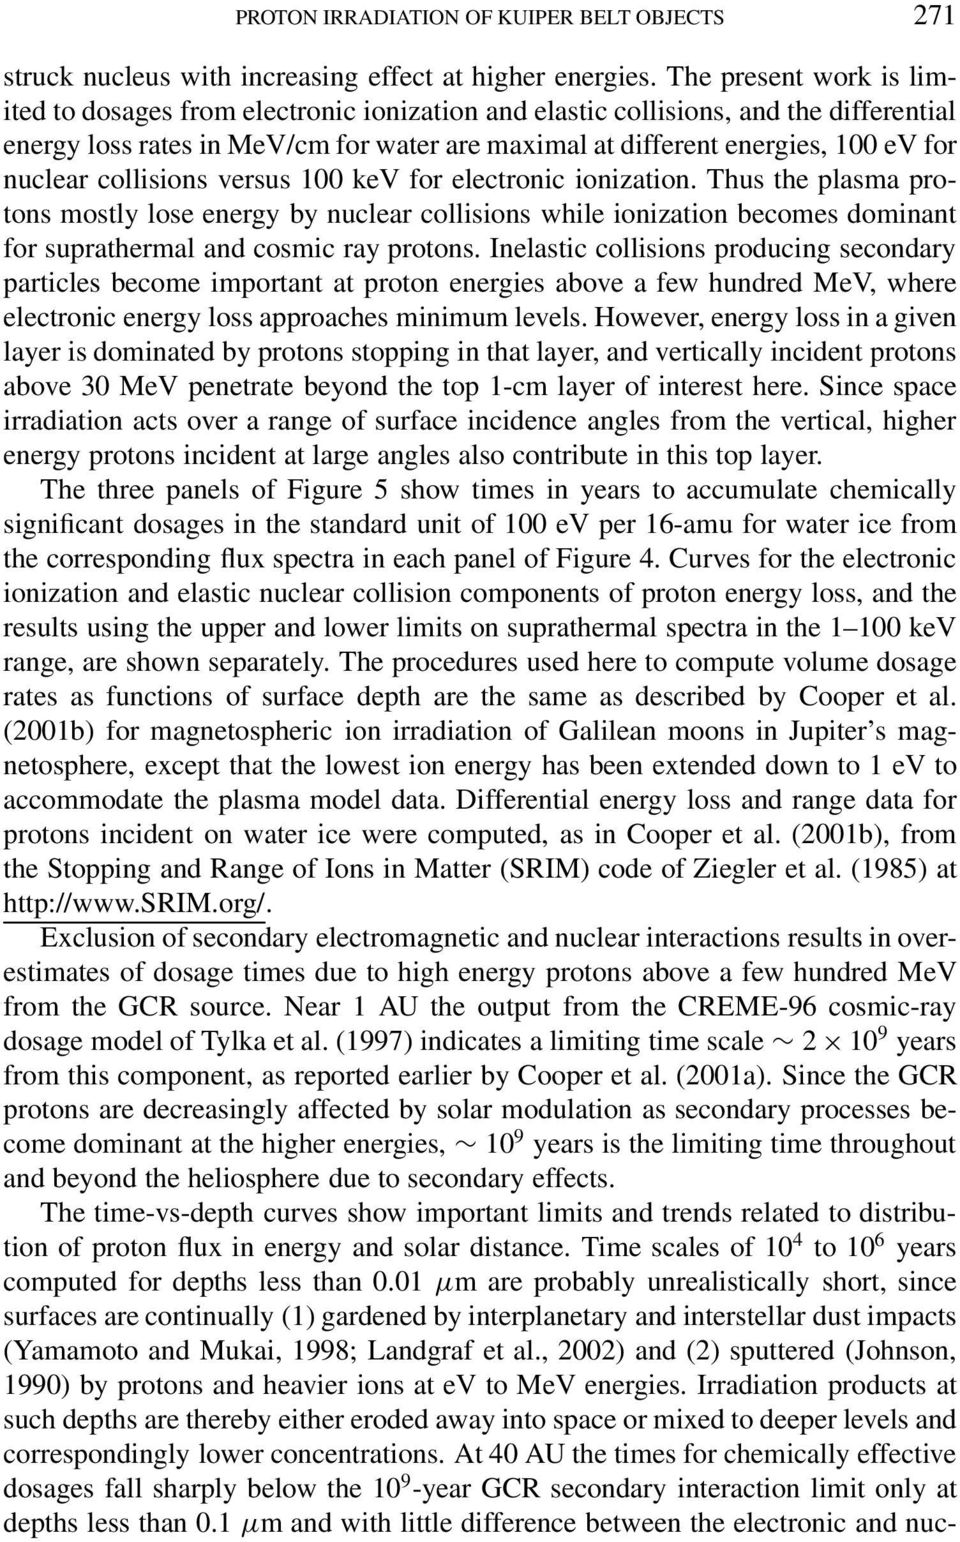 nuclear collisions versus 100 kev for electronic ionization. Thus the plasma protons mostly lose energy by nuclear collisions while ionization becomes dominant for suprathermal and cosmic ray protons.